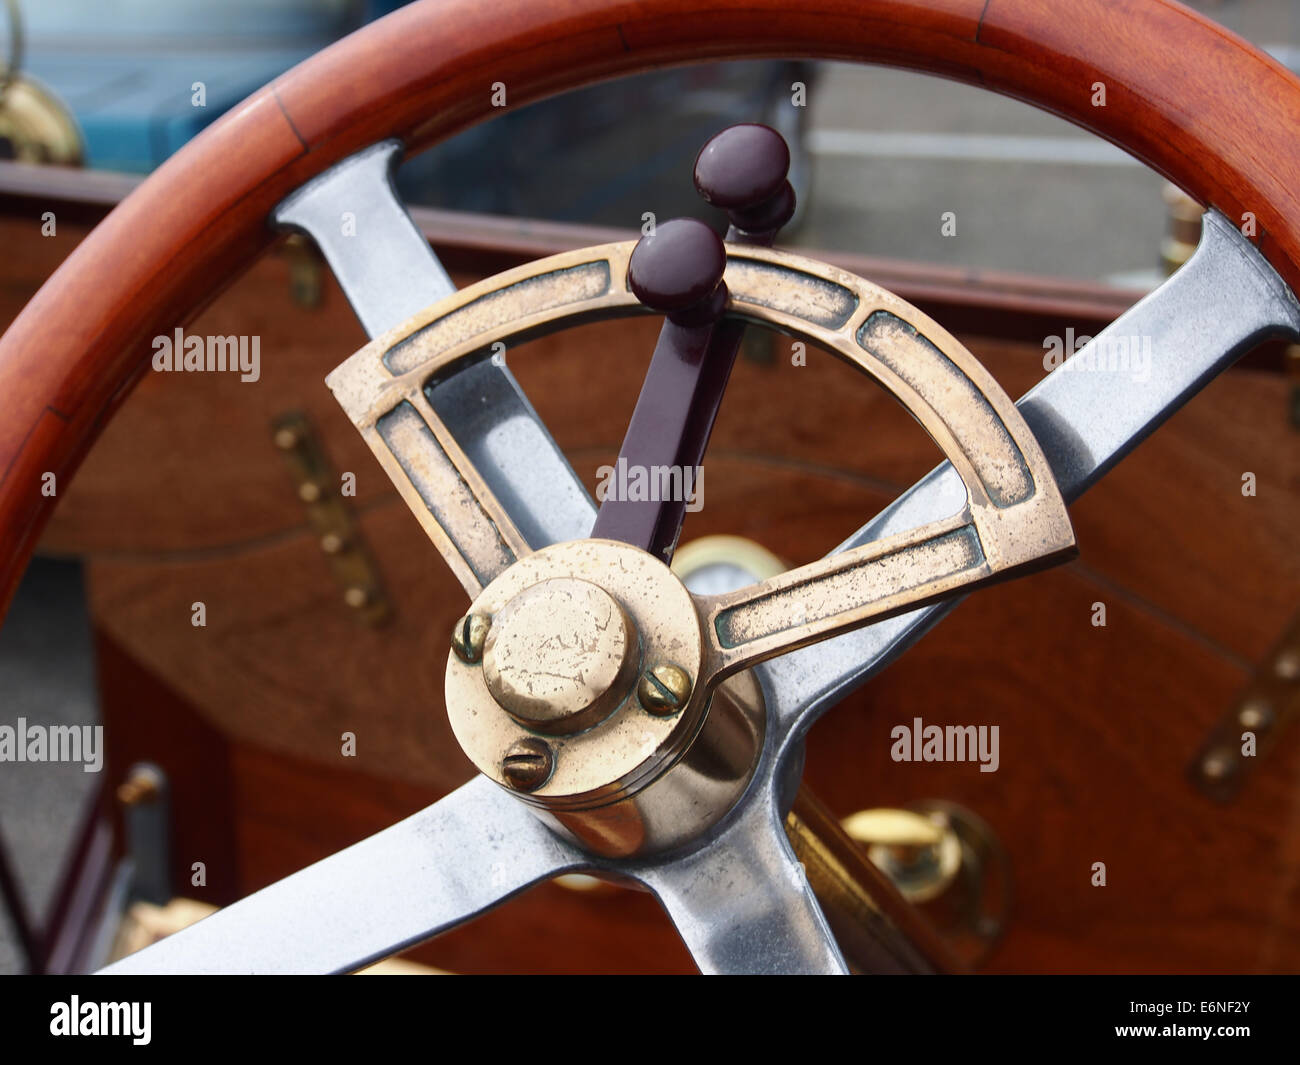 1910 Straker Squire 2800cc, Nr519, pic3 - Stock Image